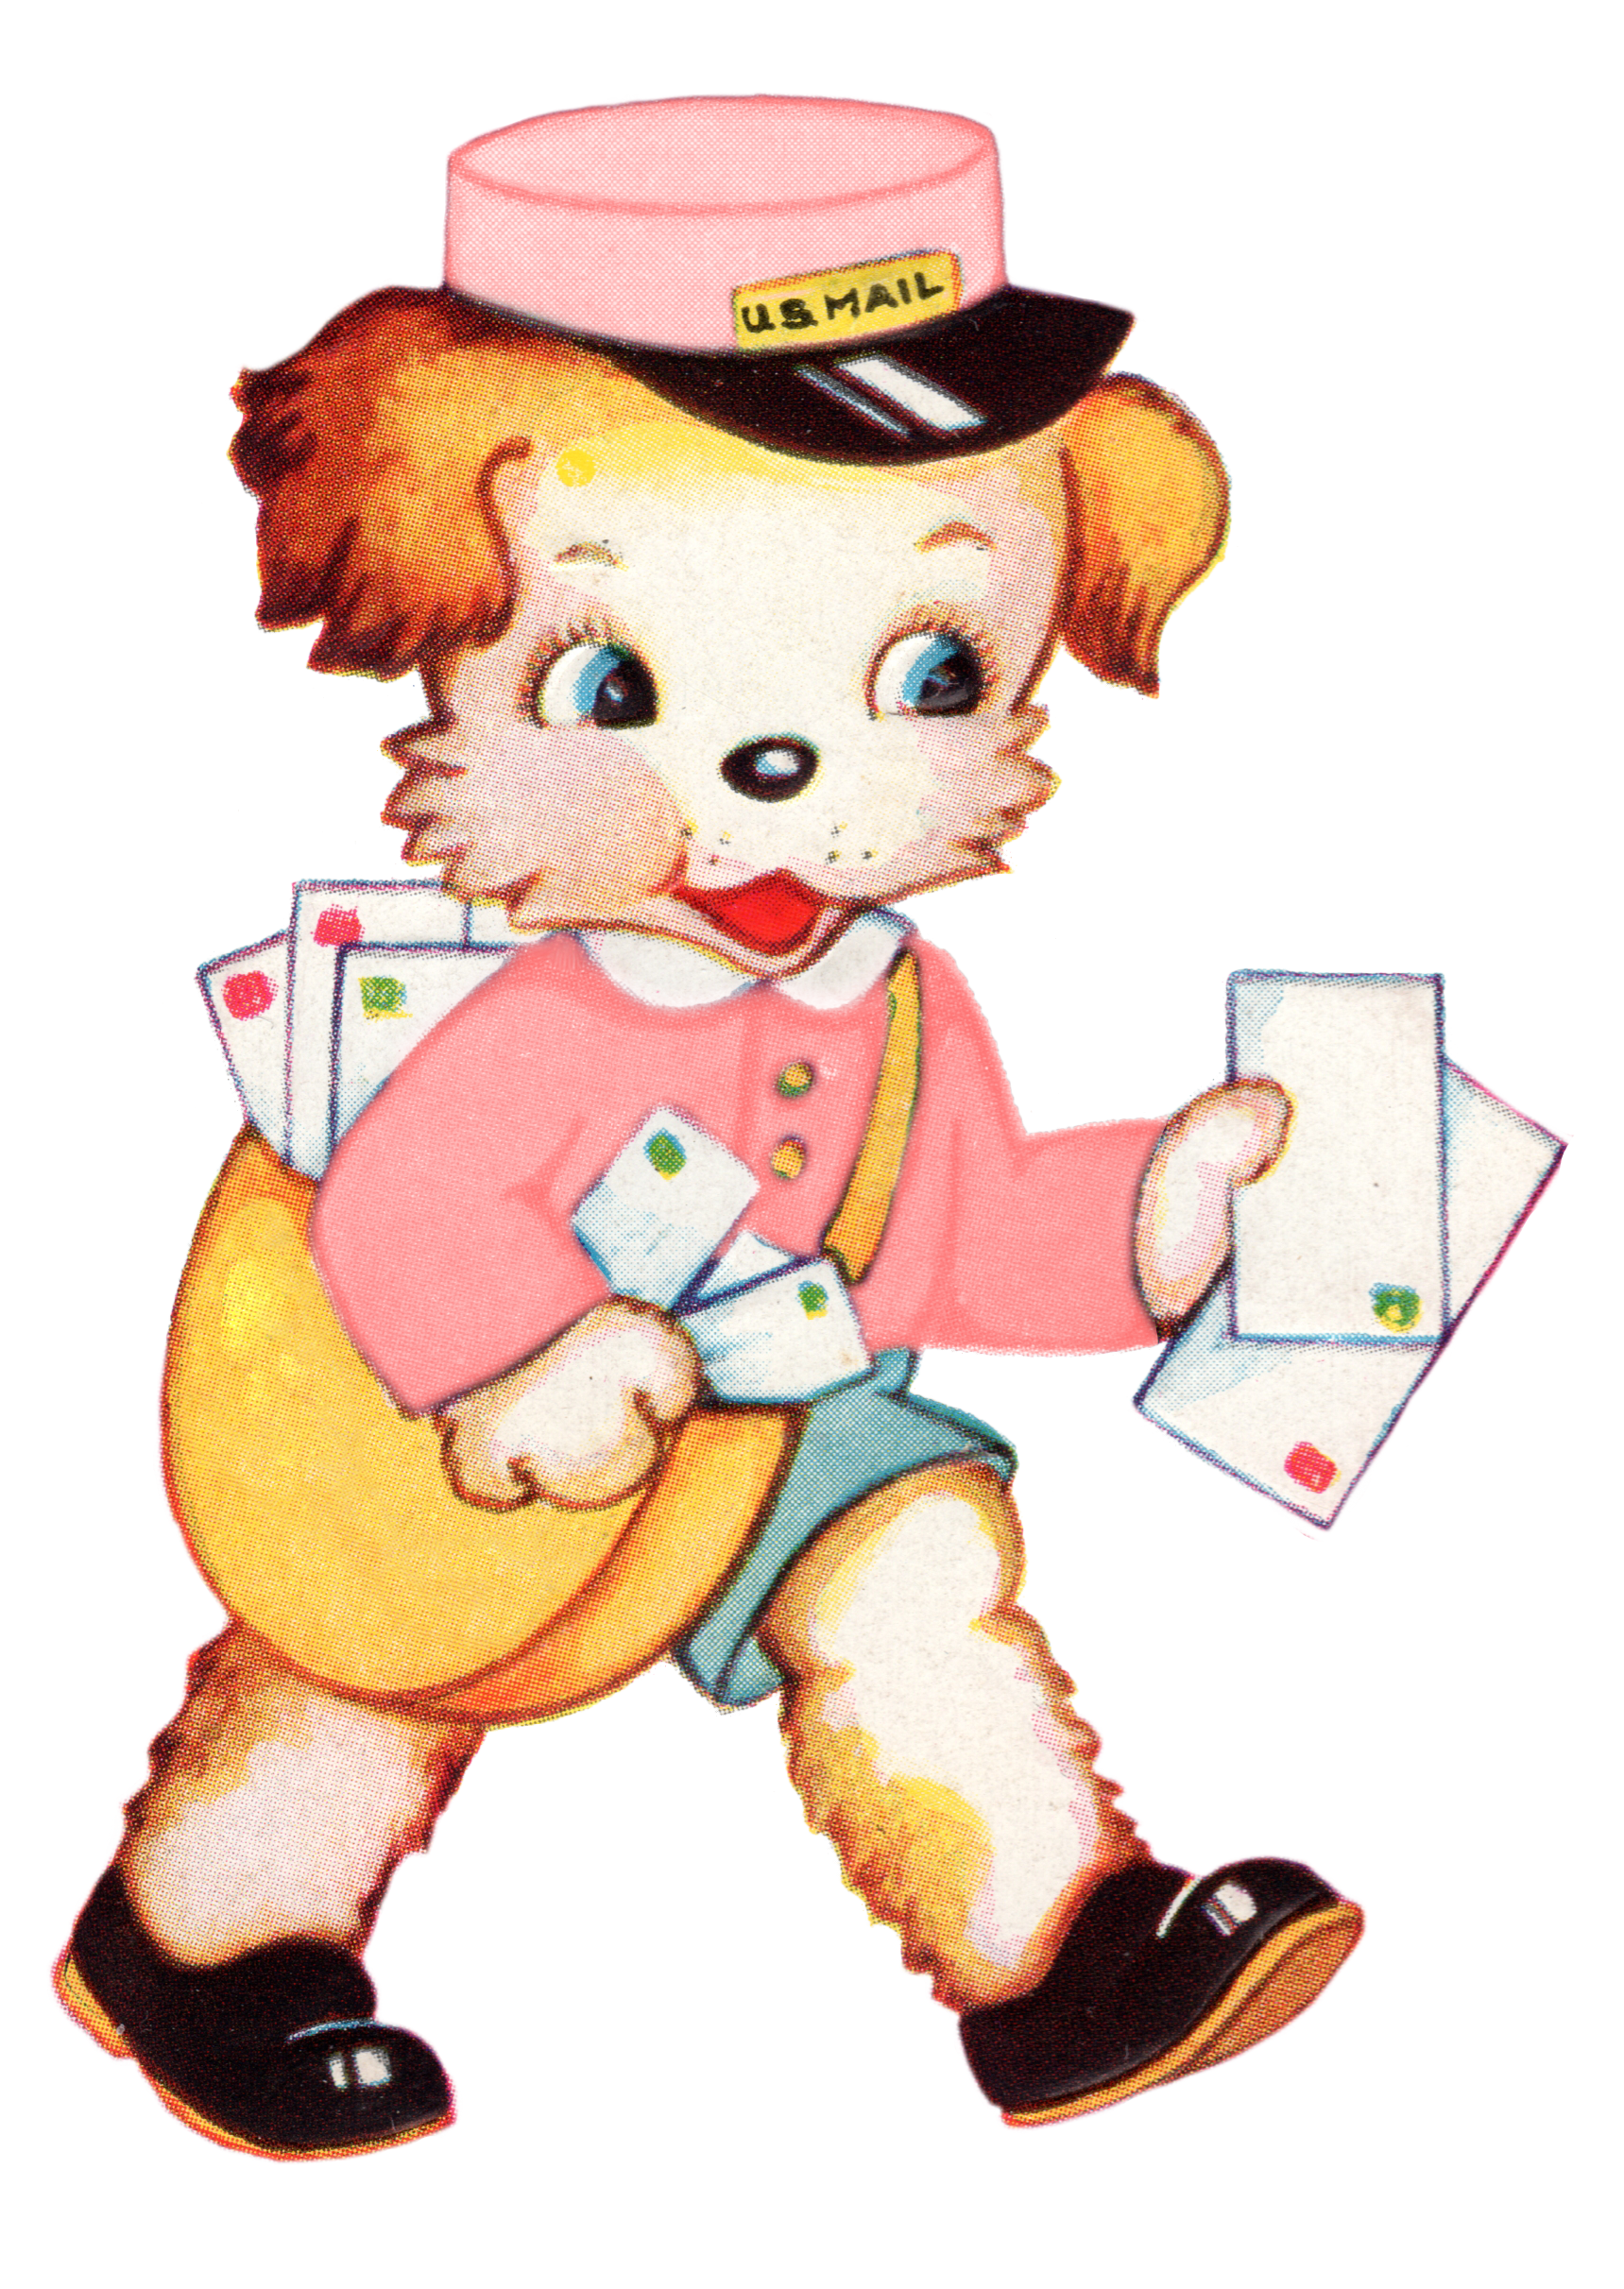 Mail clipart vintage. Royalty free images puppy